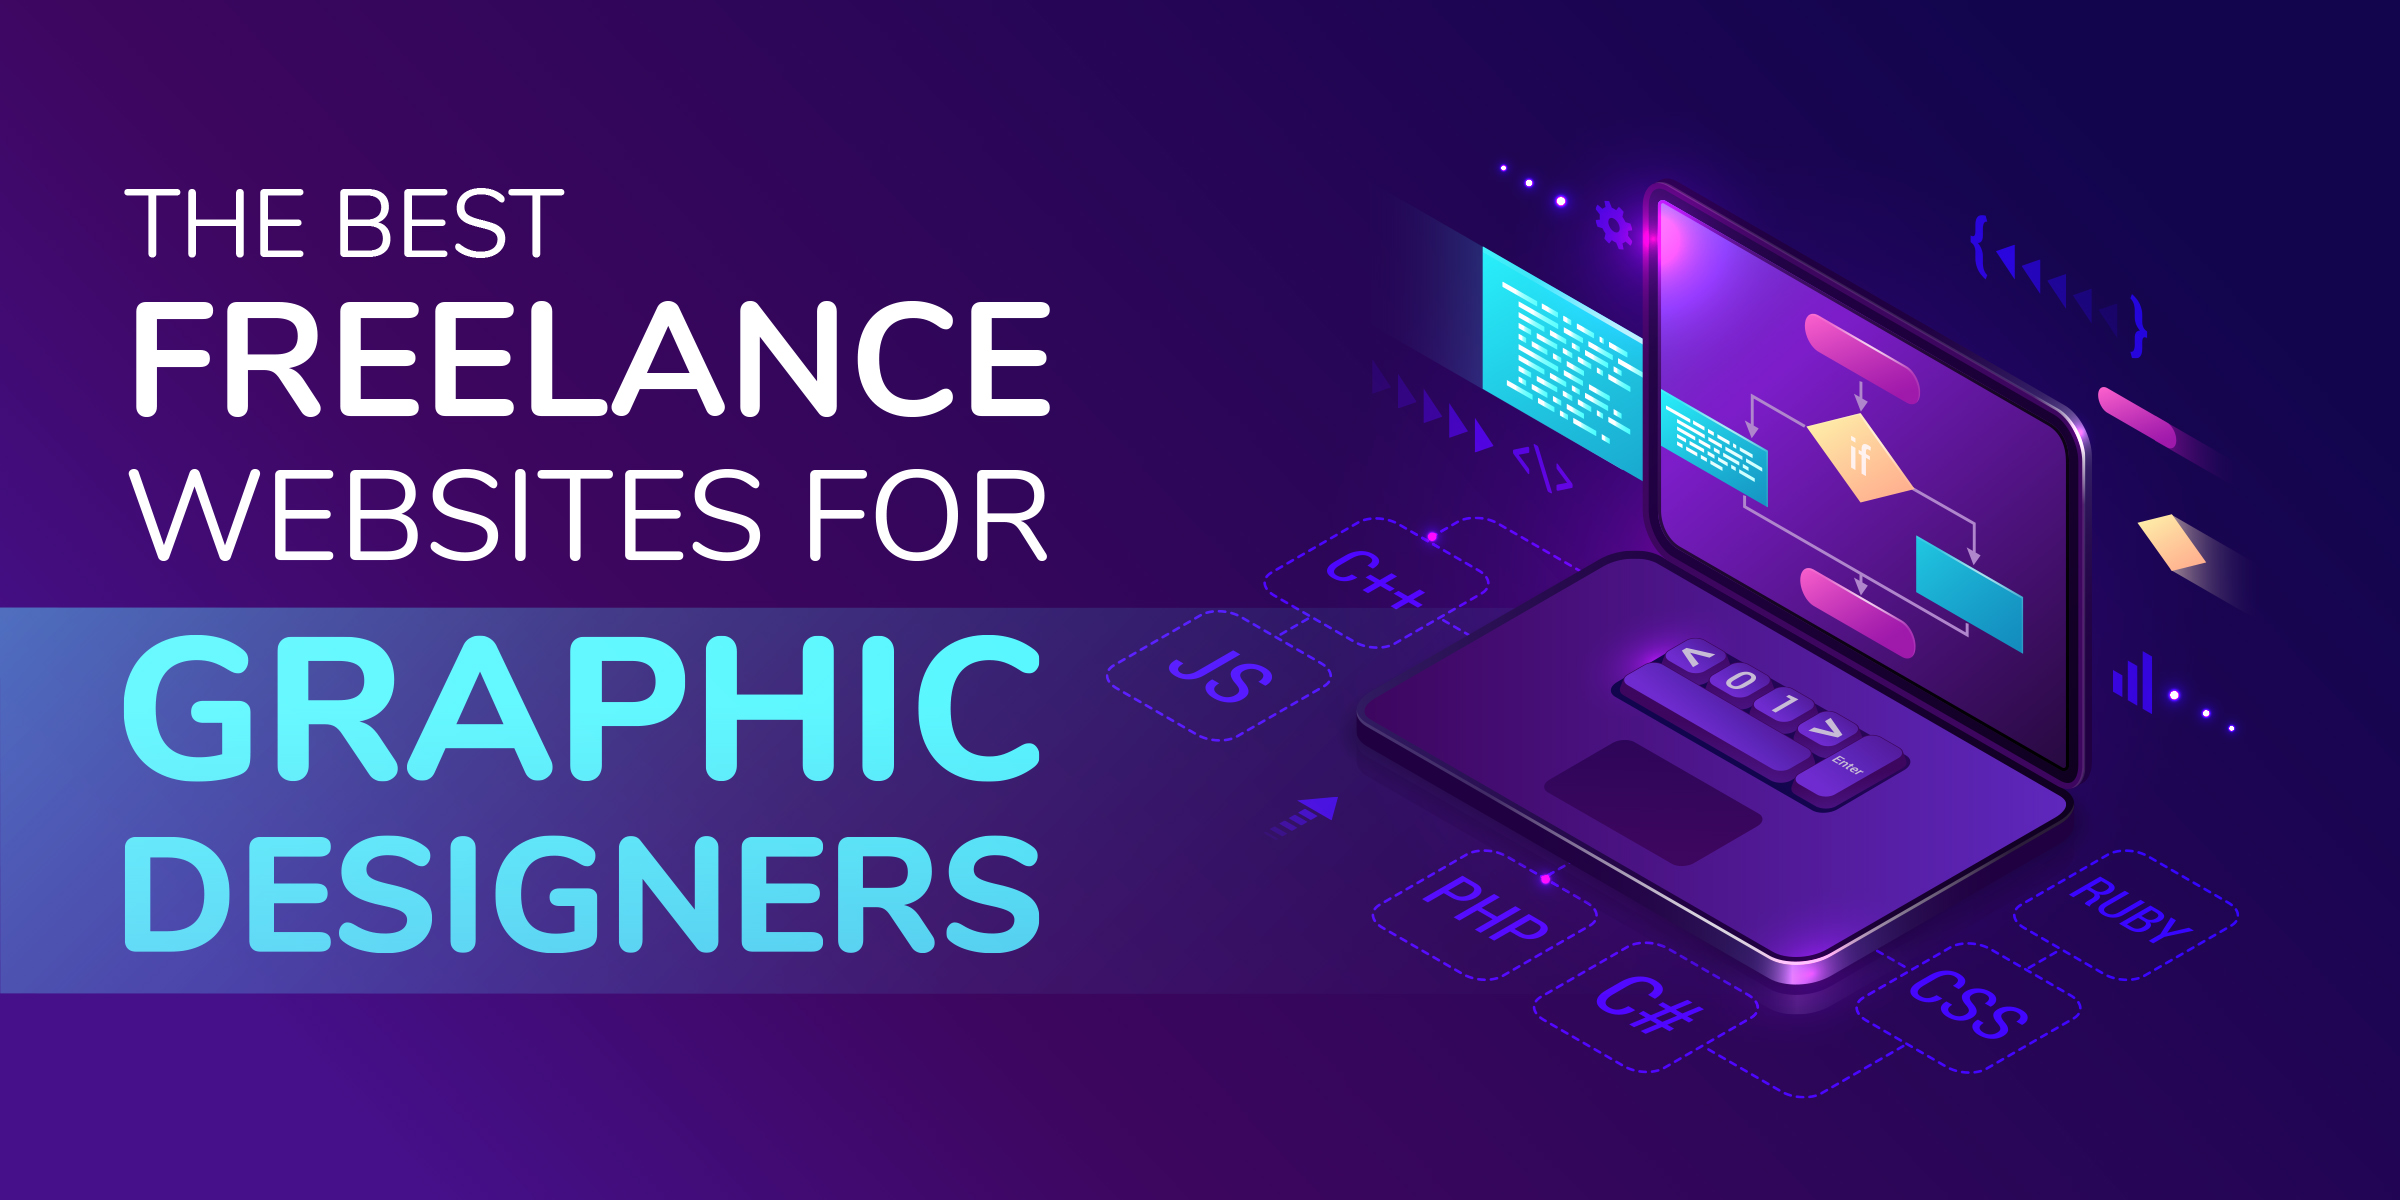 Best Freelance Websites for Graphic Designers